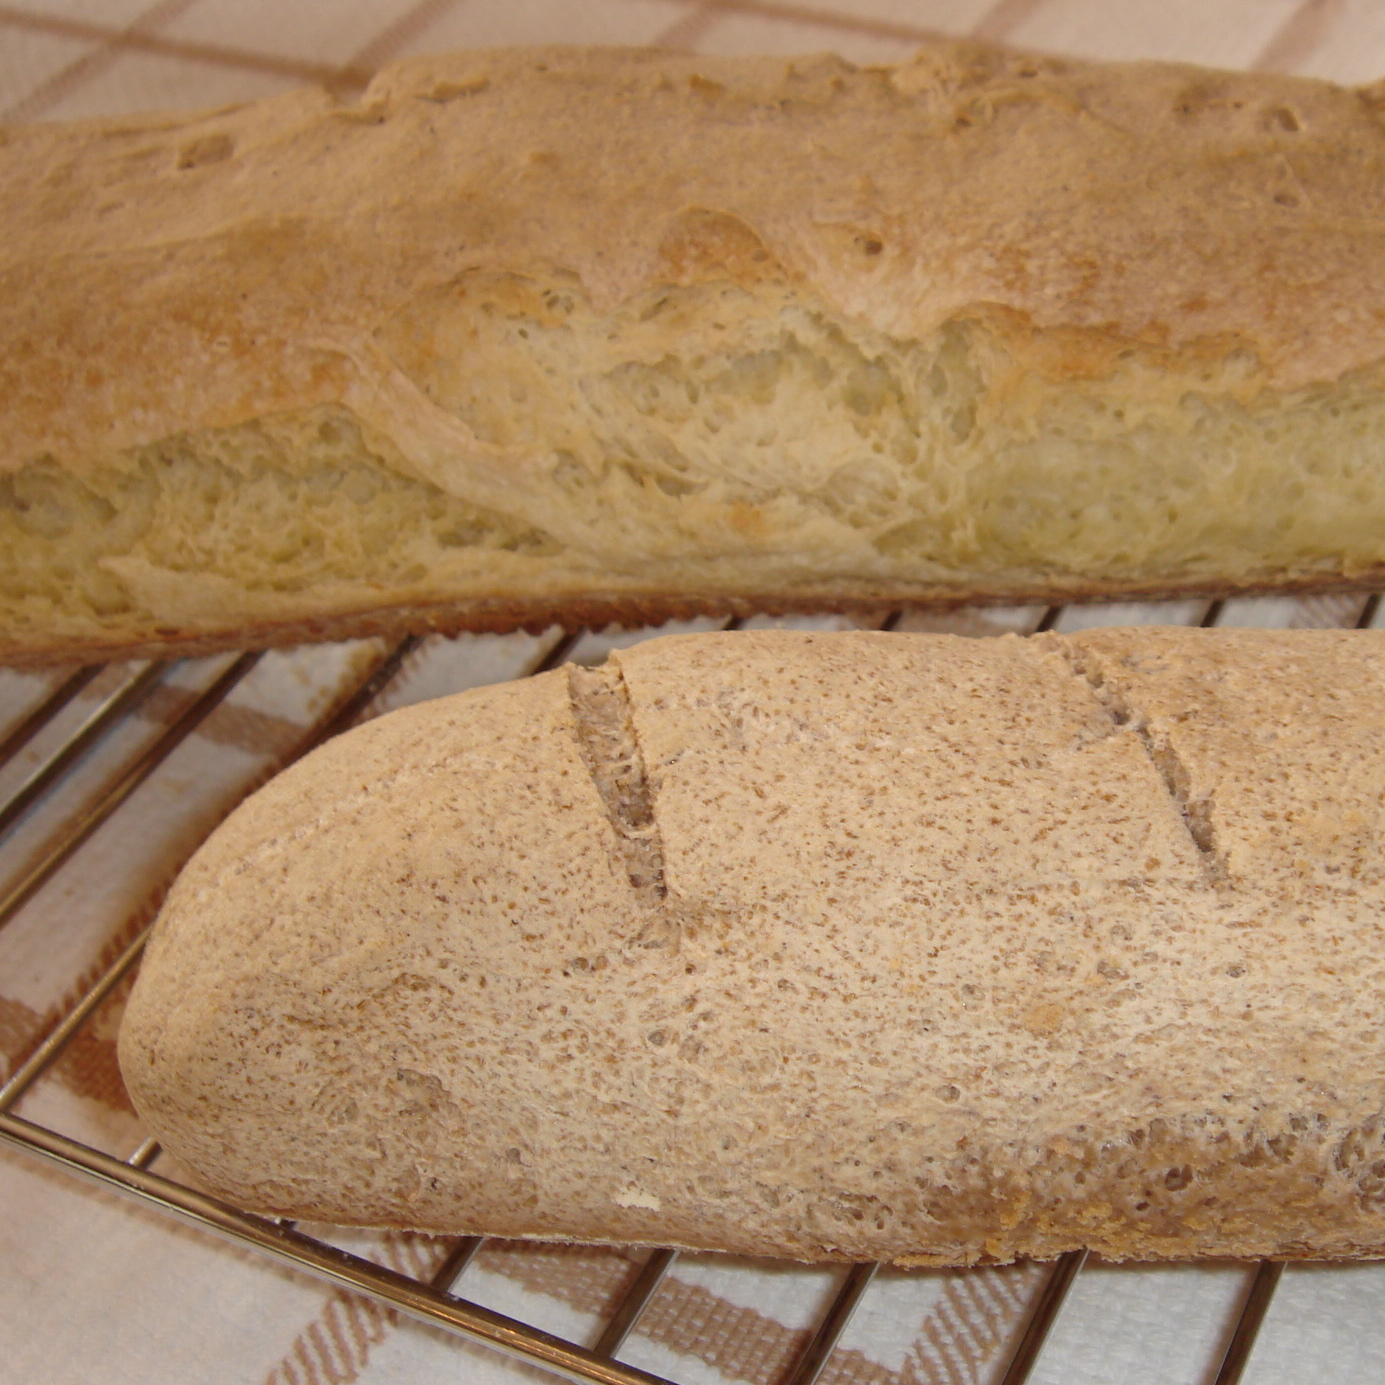 The Gluten-Free-Bread Baking-with-Psyllium-Husks-Powder Test